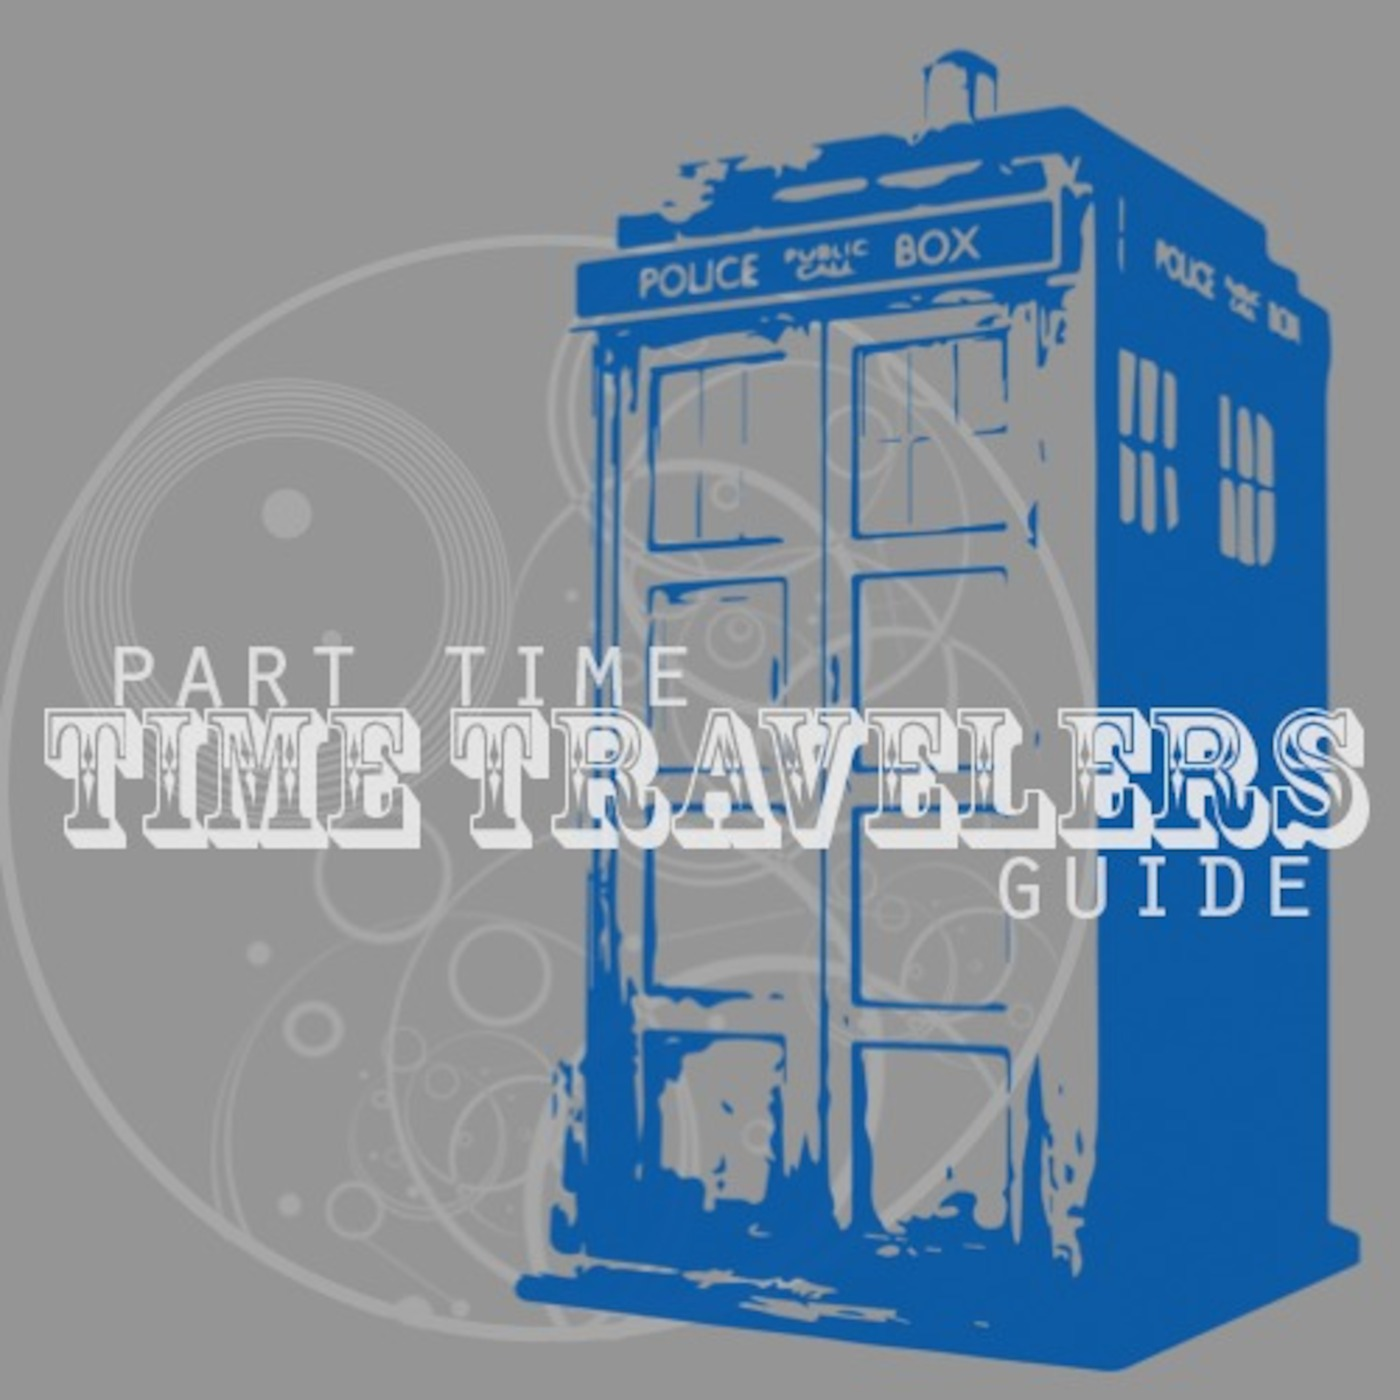 Part-Time Time Travelers Guide